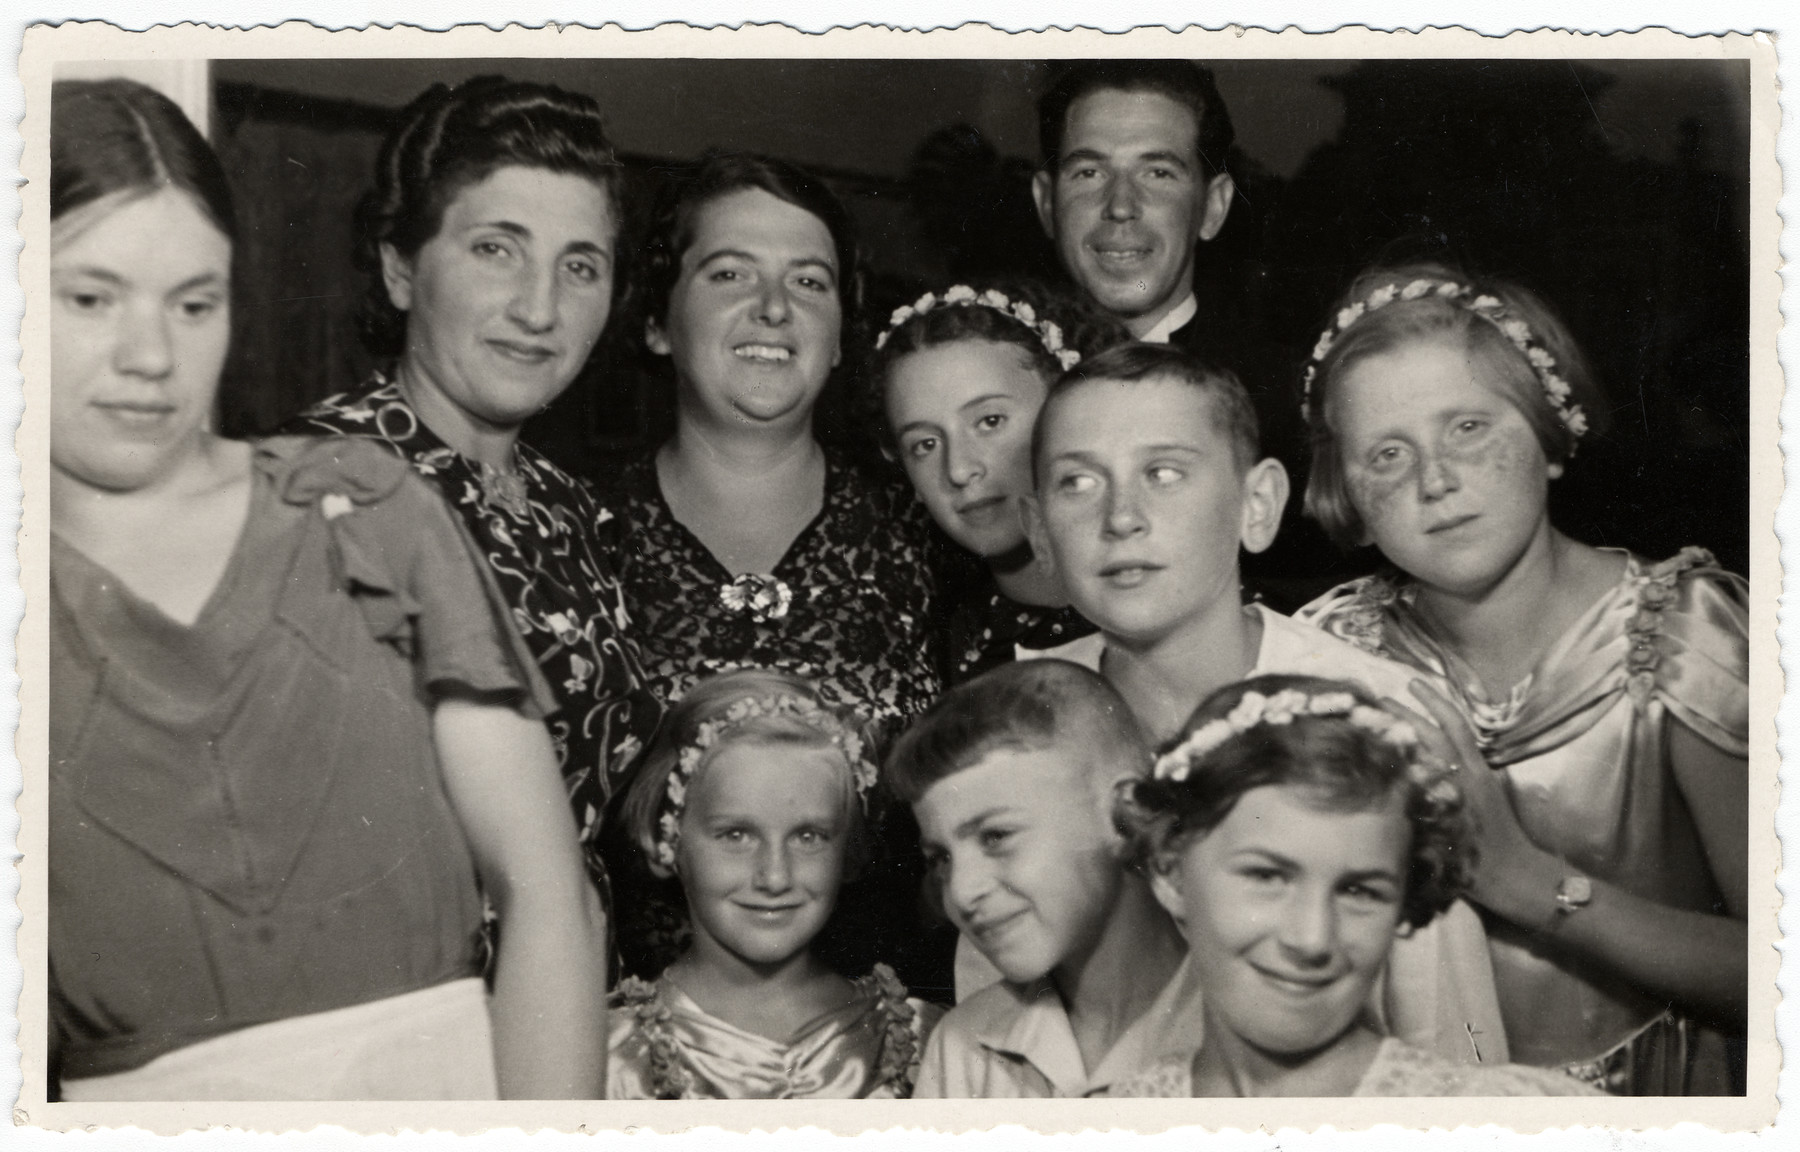 Group portrait of Latvian Jews photographed during a wedding celebration.  Lia and Bella Levenstein (far left) pose in matching dresses among relatives and friends during the wedding of David Levenstein and Hanna Thalberg in Ventspils, Latvia.  Frieda Lewenstein, Libin and Bella's mother (2nd from right), is also pictured. Neither Frieda nor her daughters survived the Holocaust.